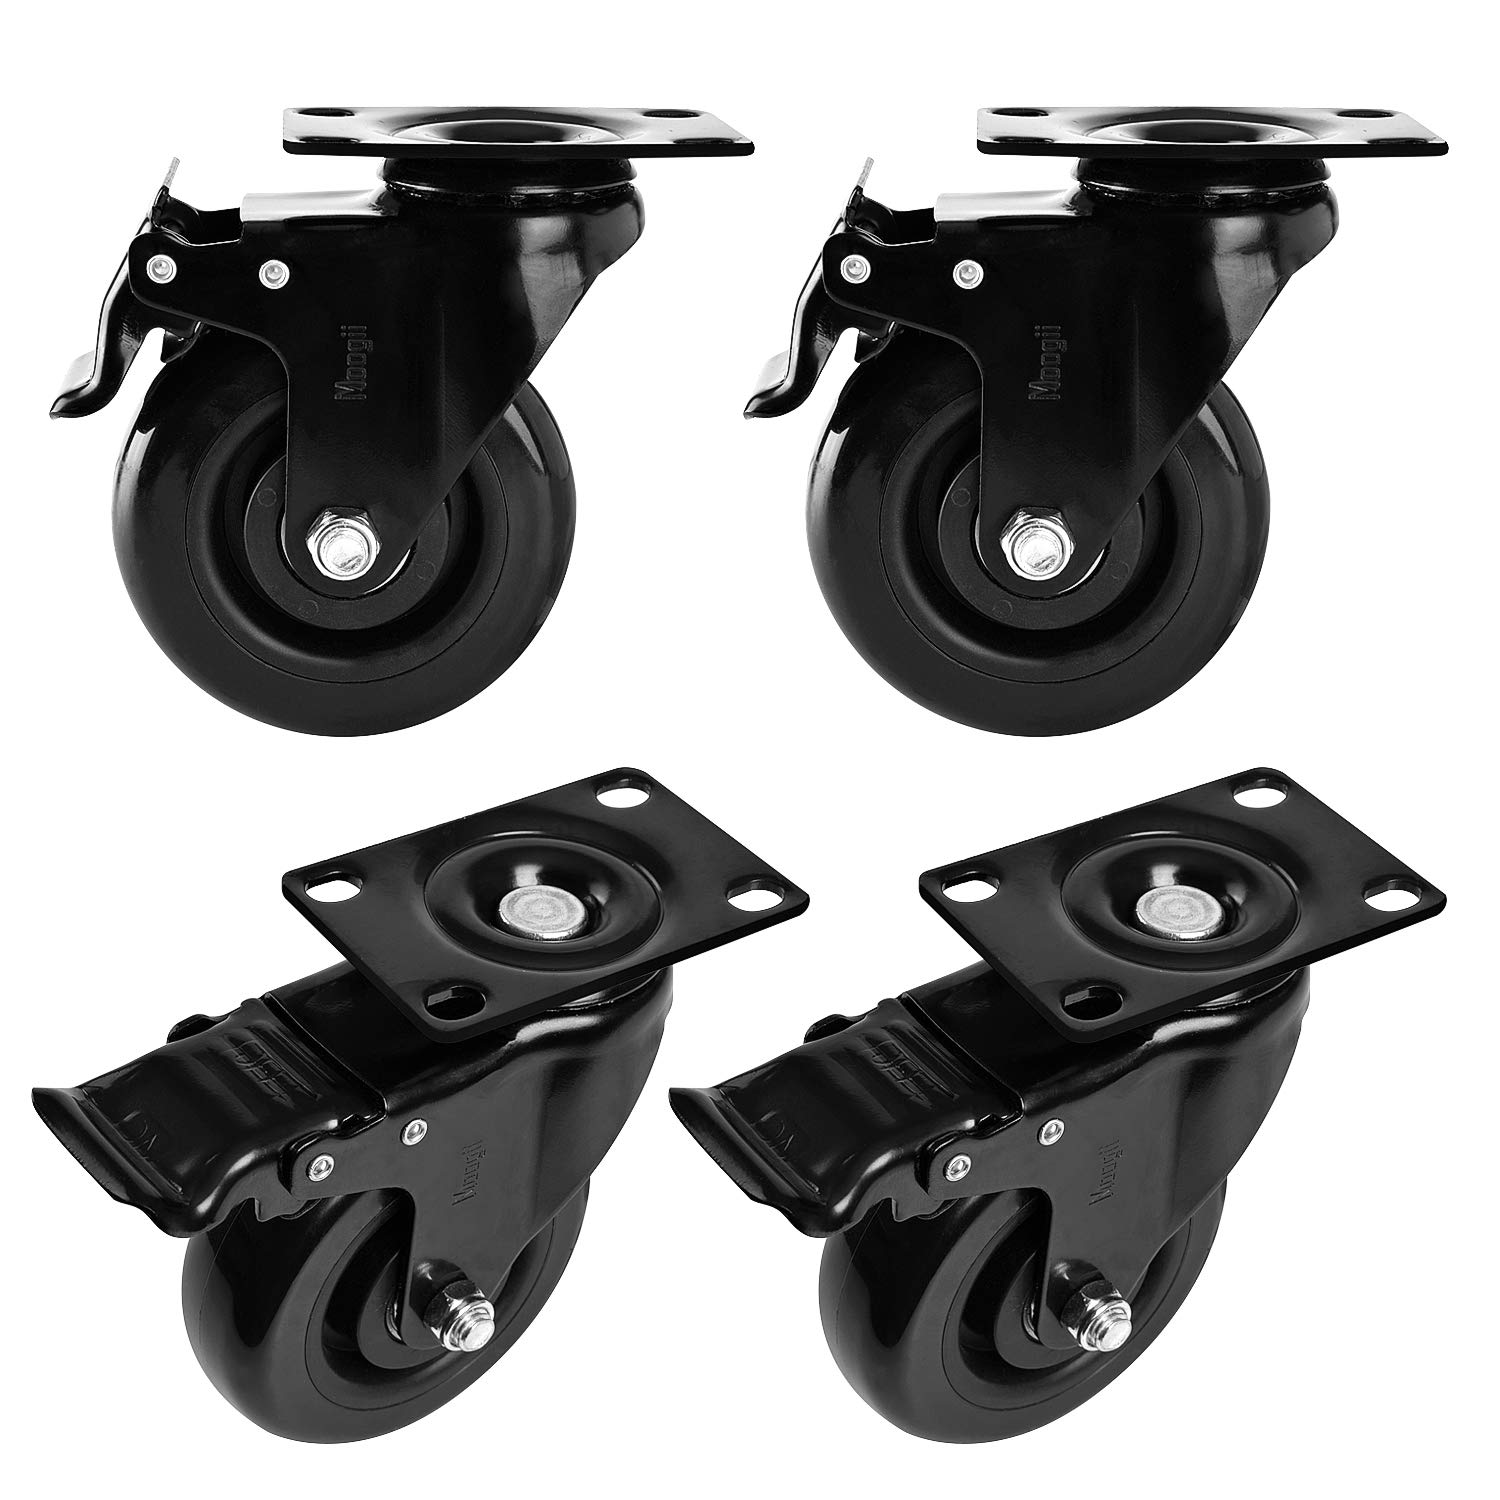 Moogiitools 4'' Swivel Rubber Caster wheels with Safety Dual Locking Heavy Duty 1200lbs Casters Set of 4 Black (All with Brake)